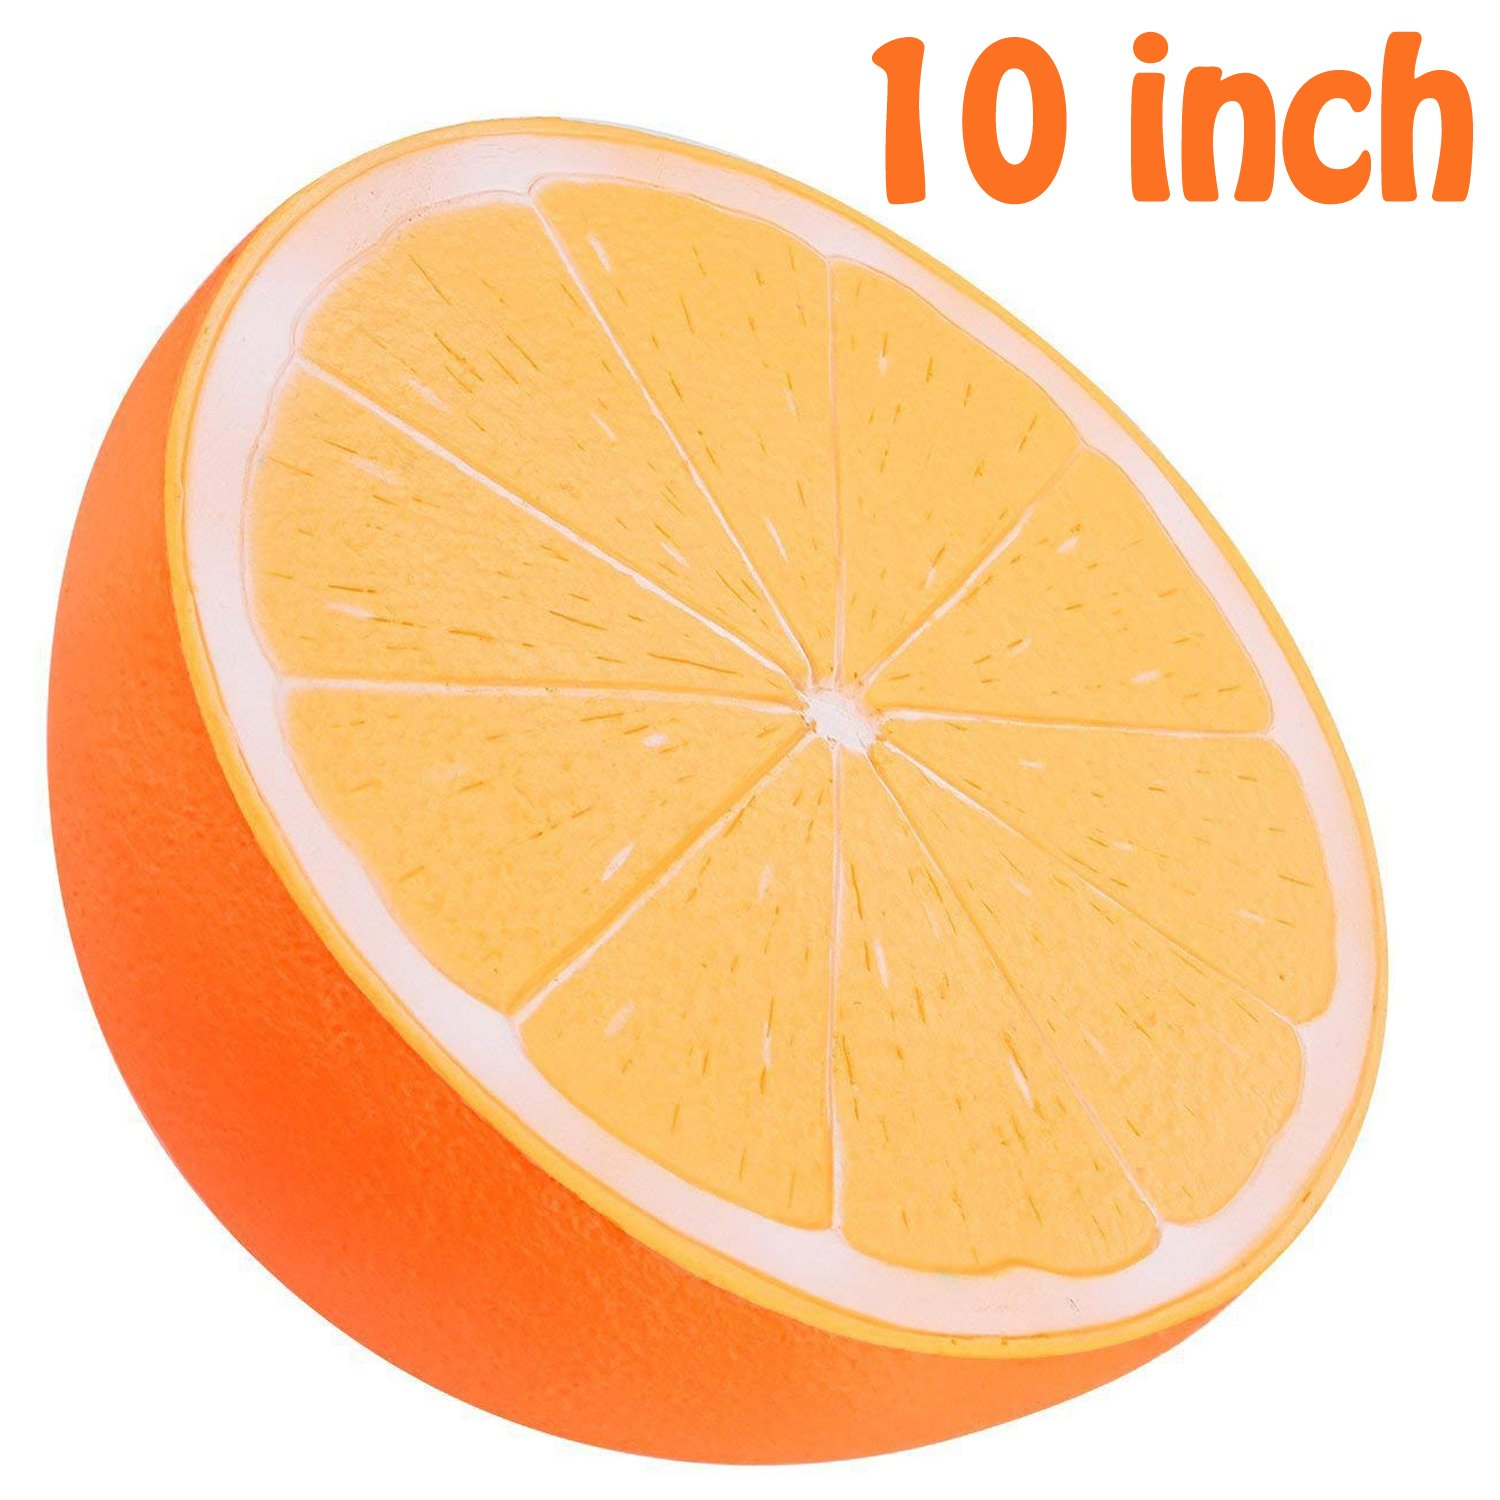 BeYumi Slow Rising Toy, 10 Inch Jumbo Orange Squishy Cream Scented Simulation Cute Fruit Squeeze Toys for Collection Gift, Decorative Props Large or Stress Relief